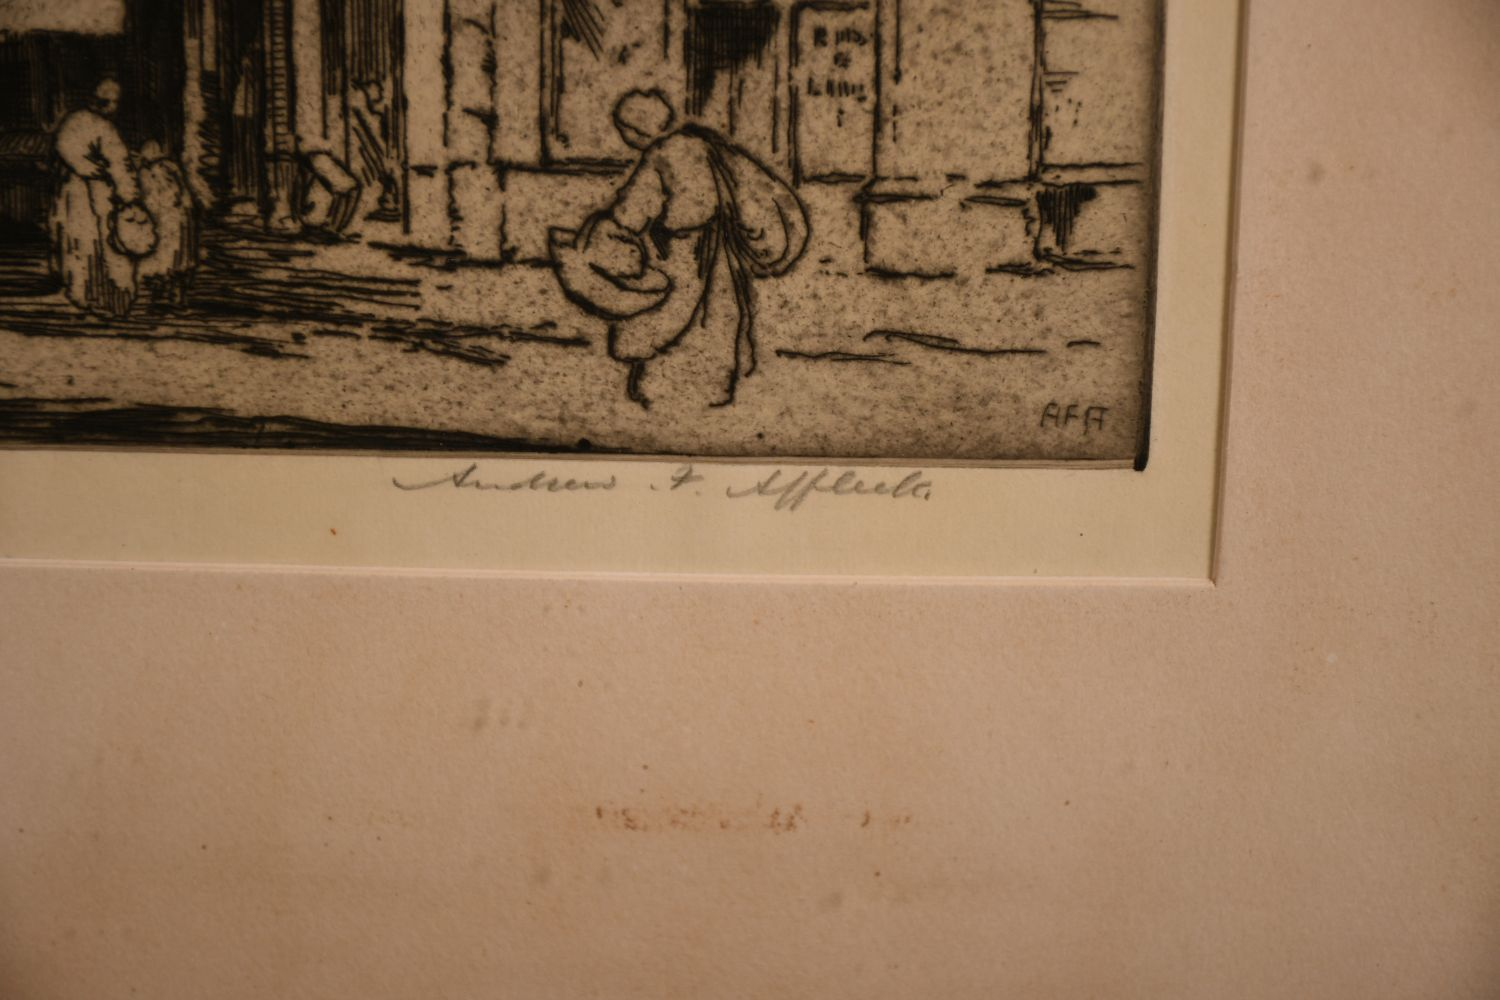 """Andrew Affleck (1869-1935) British 'Towers of Calais' etching, signed in pencil 16""""x12"""" - Image 3 of 4"""